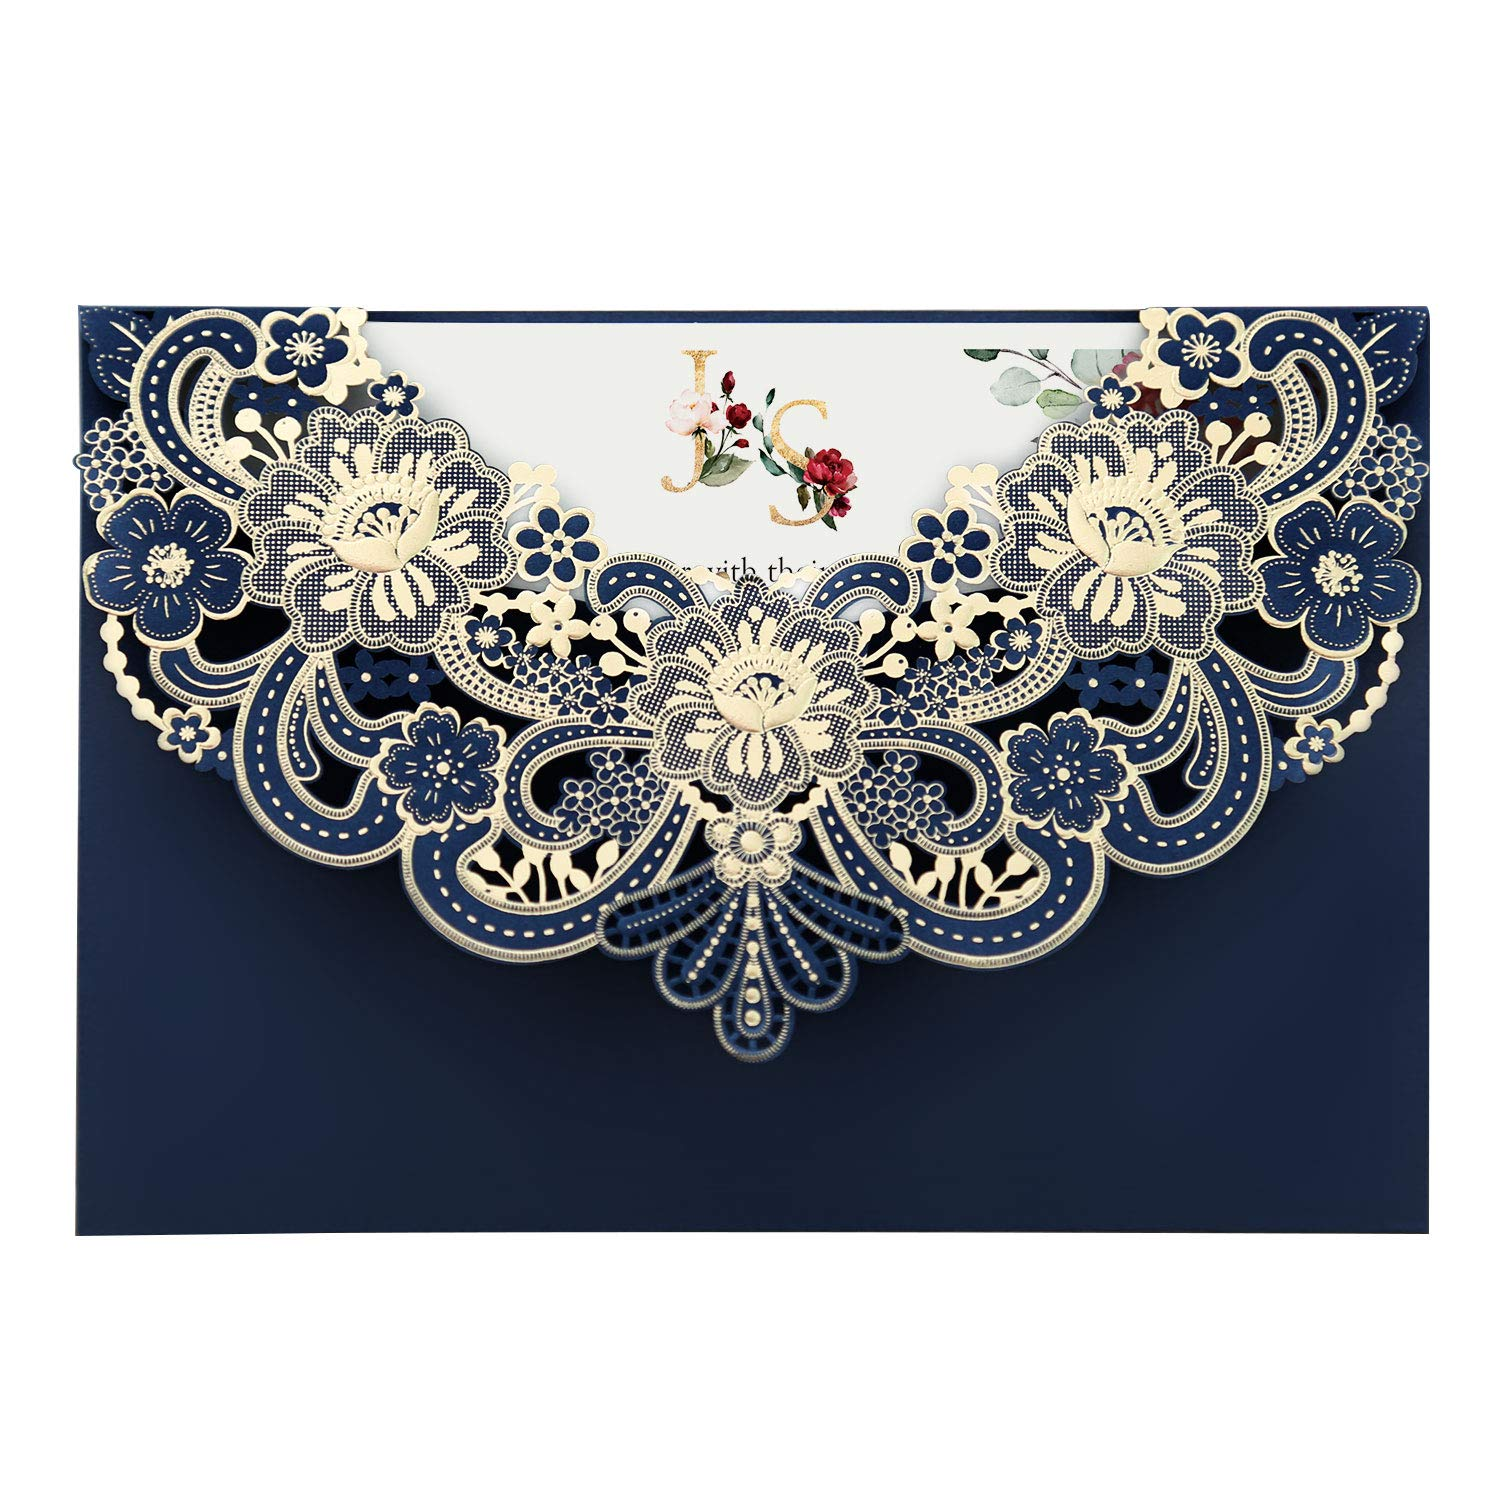 Doris Home 50pcs Navy Blue Laser Cut Flora Lace Invitation Cards with Blank Inner Sheets and Envelopes for Wedding invitations, Bridal Shower, Engagement, Birthday, Baby Shower (50) (Blue)